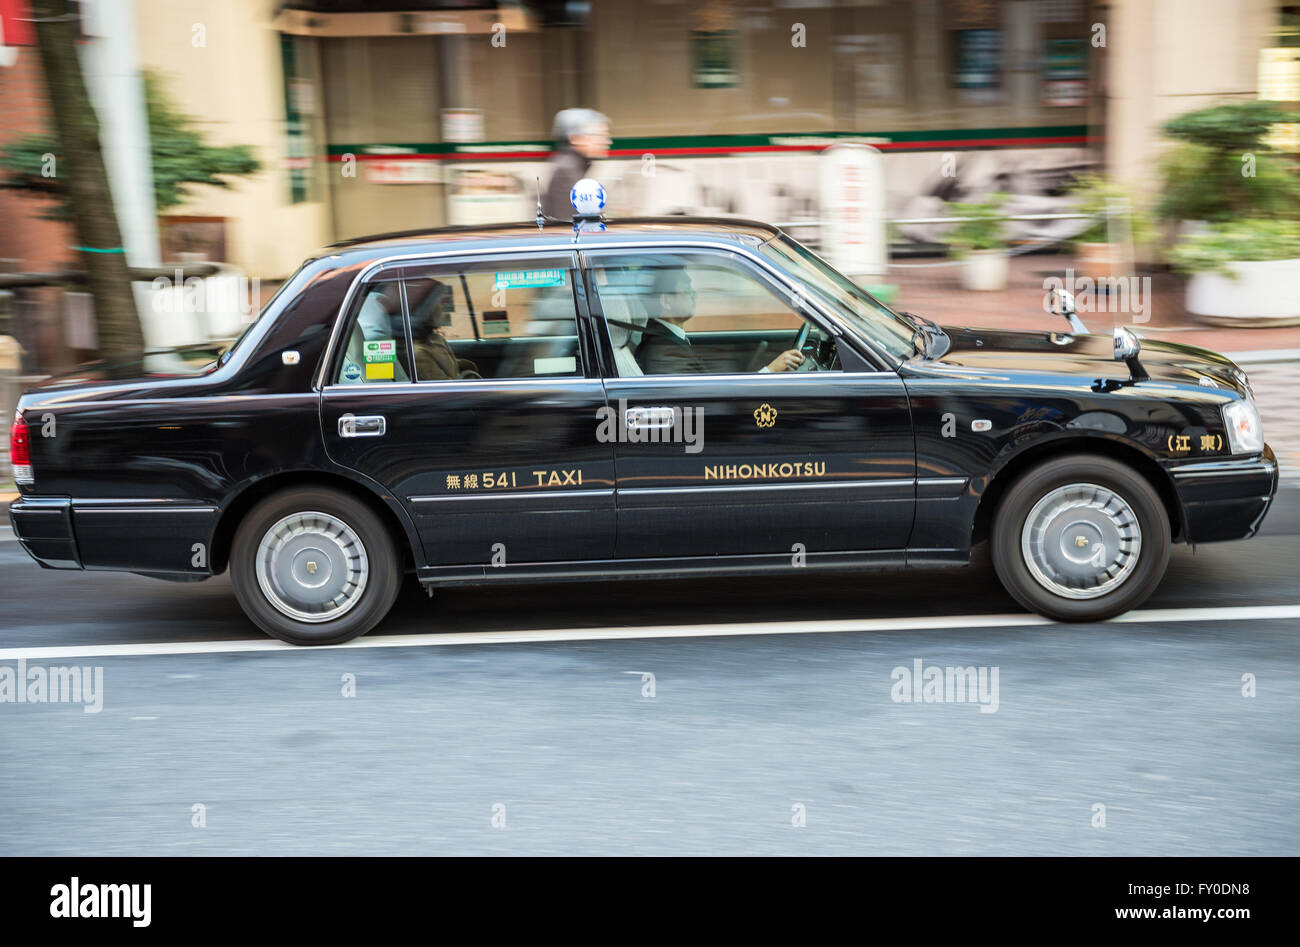 Toyota Crown taxi on street in Tokyo city, Japan - Stock Image